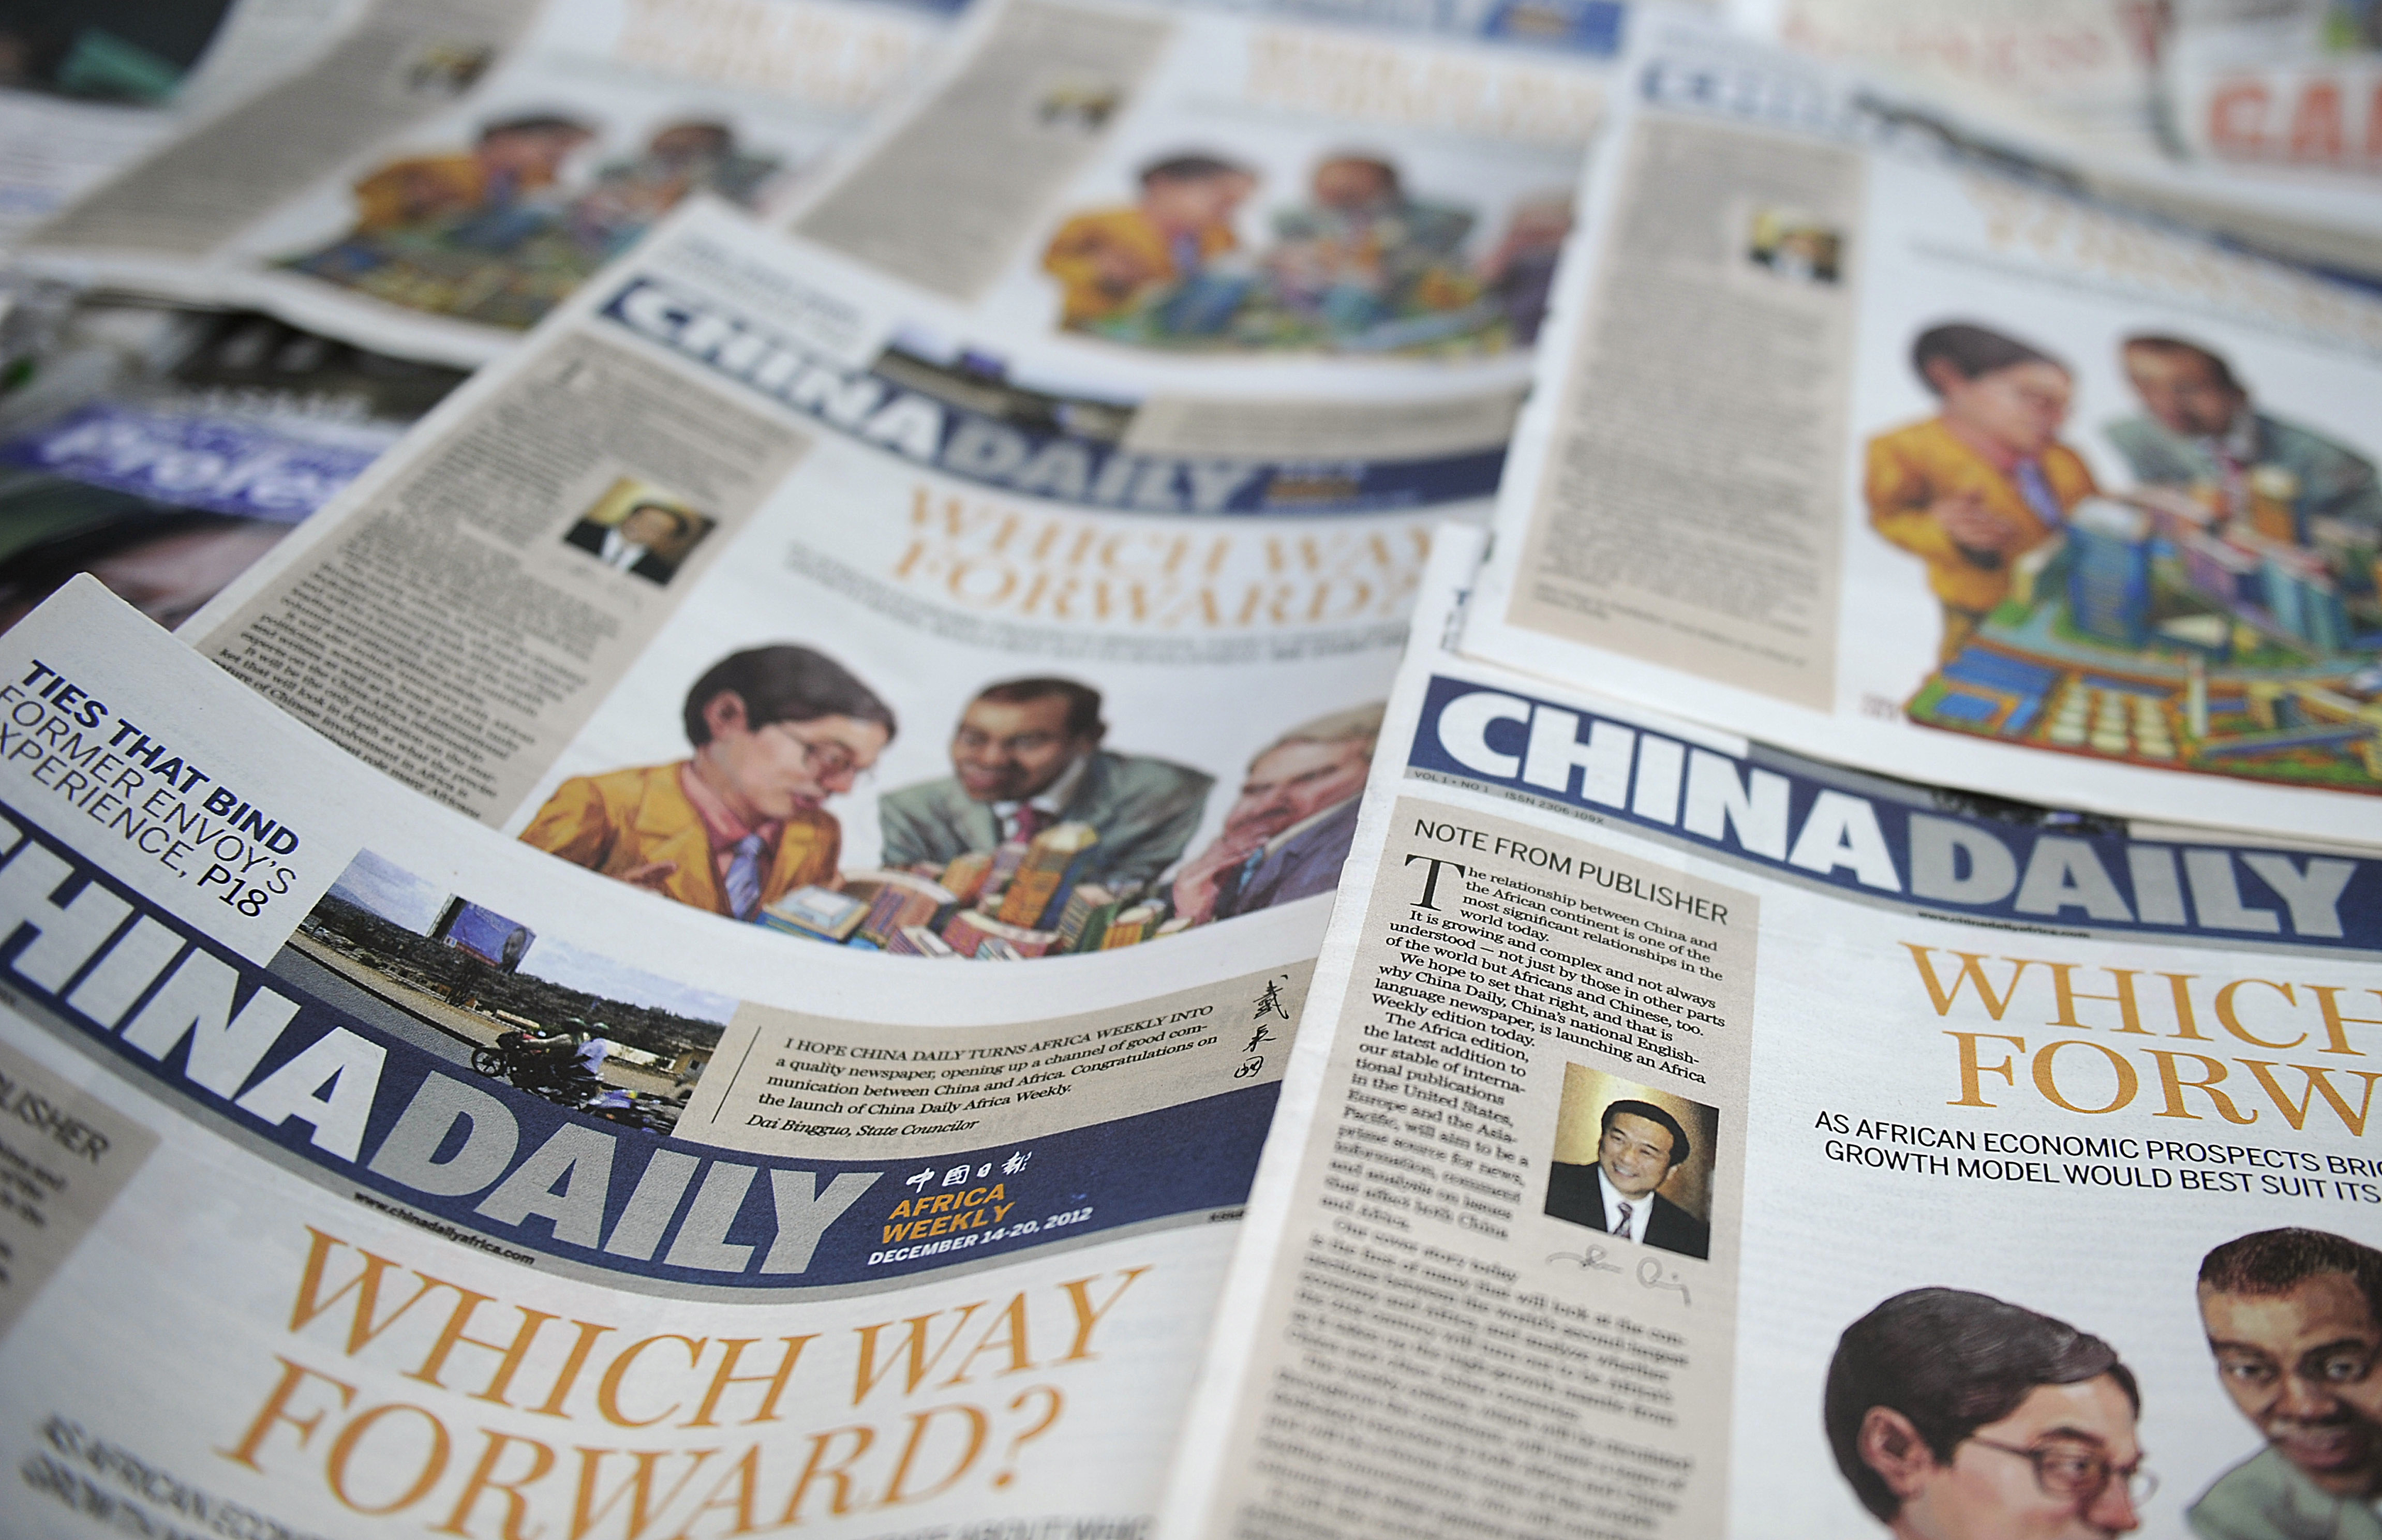 Copies of China's Africa edition of its daily newspaper sits on a news stand in the Kenyan capital Nairobi on December 14, 2012. (TONY KARUMBA/AFP via Getty Images)